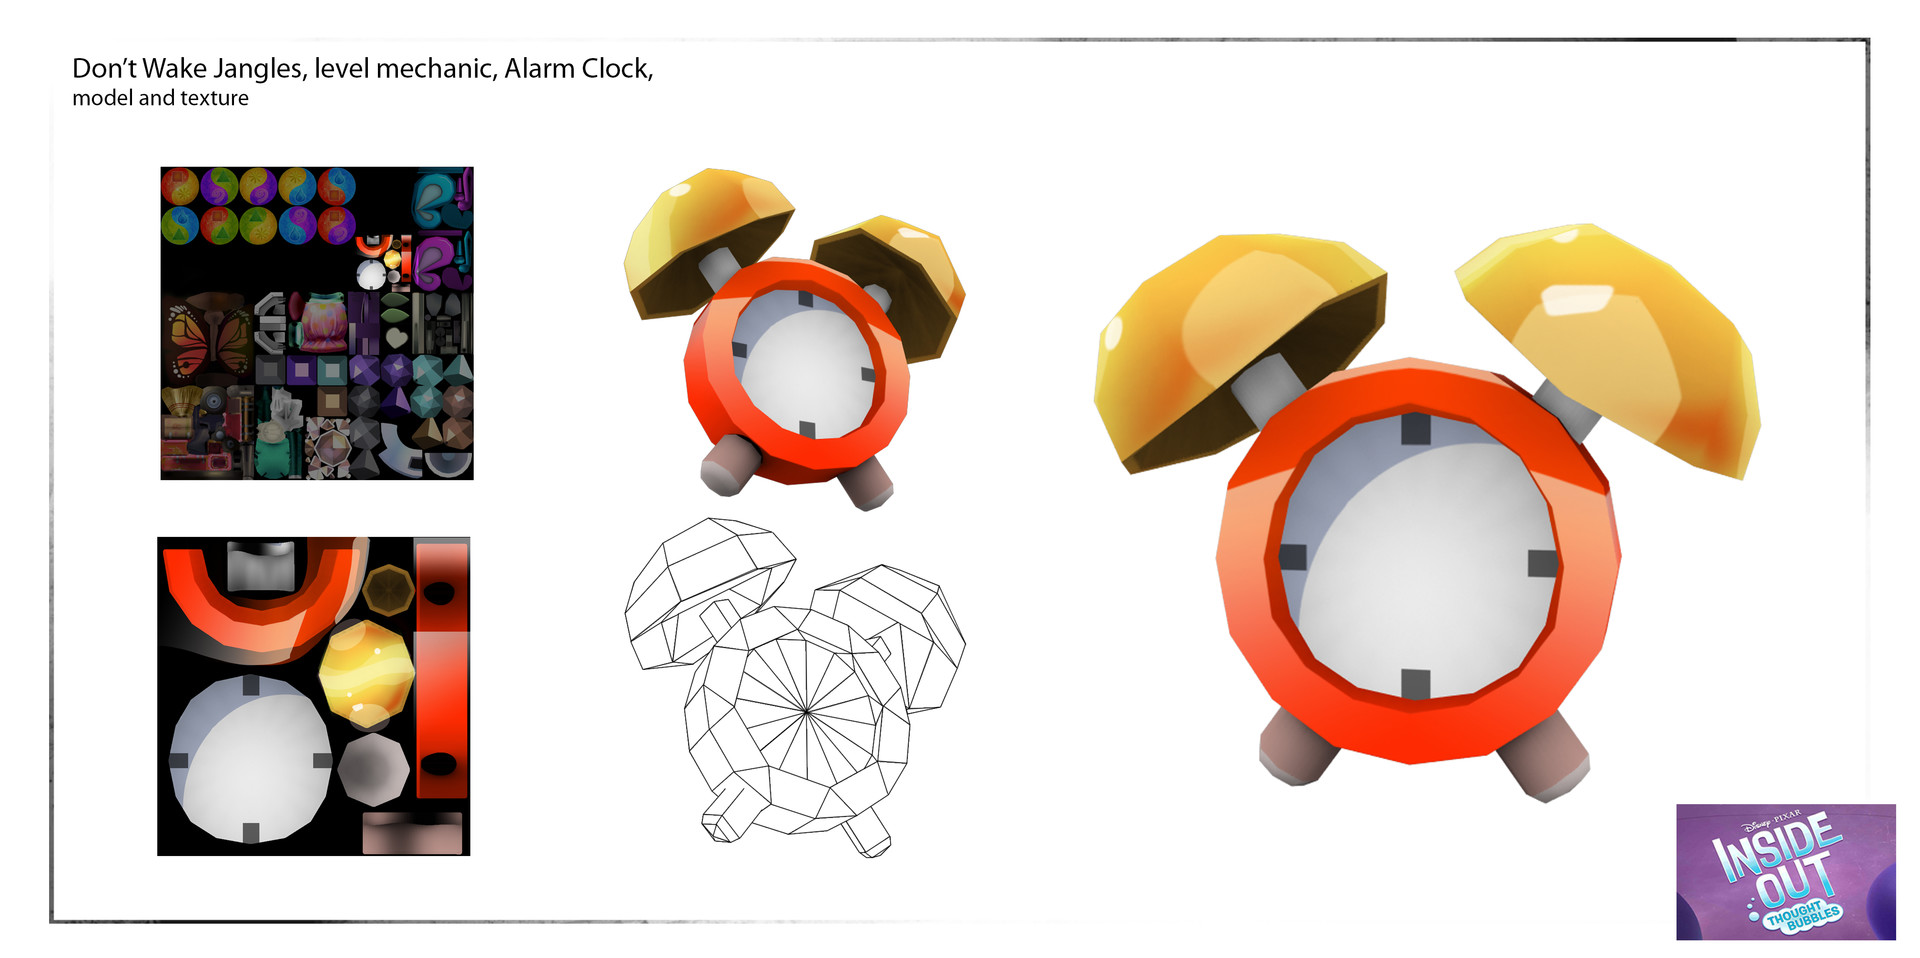 Modeled, painted textured and animated alarm clock for in game mechanic